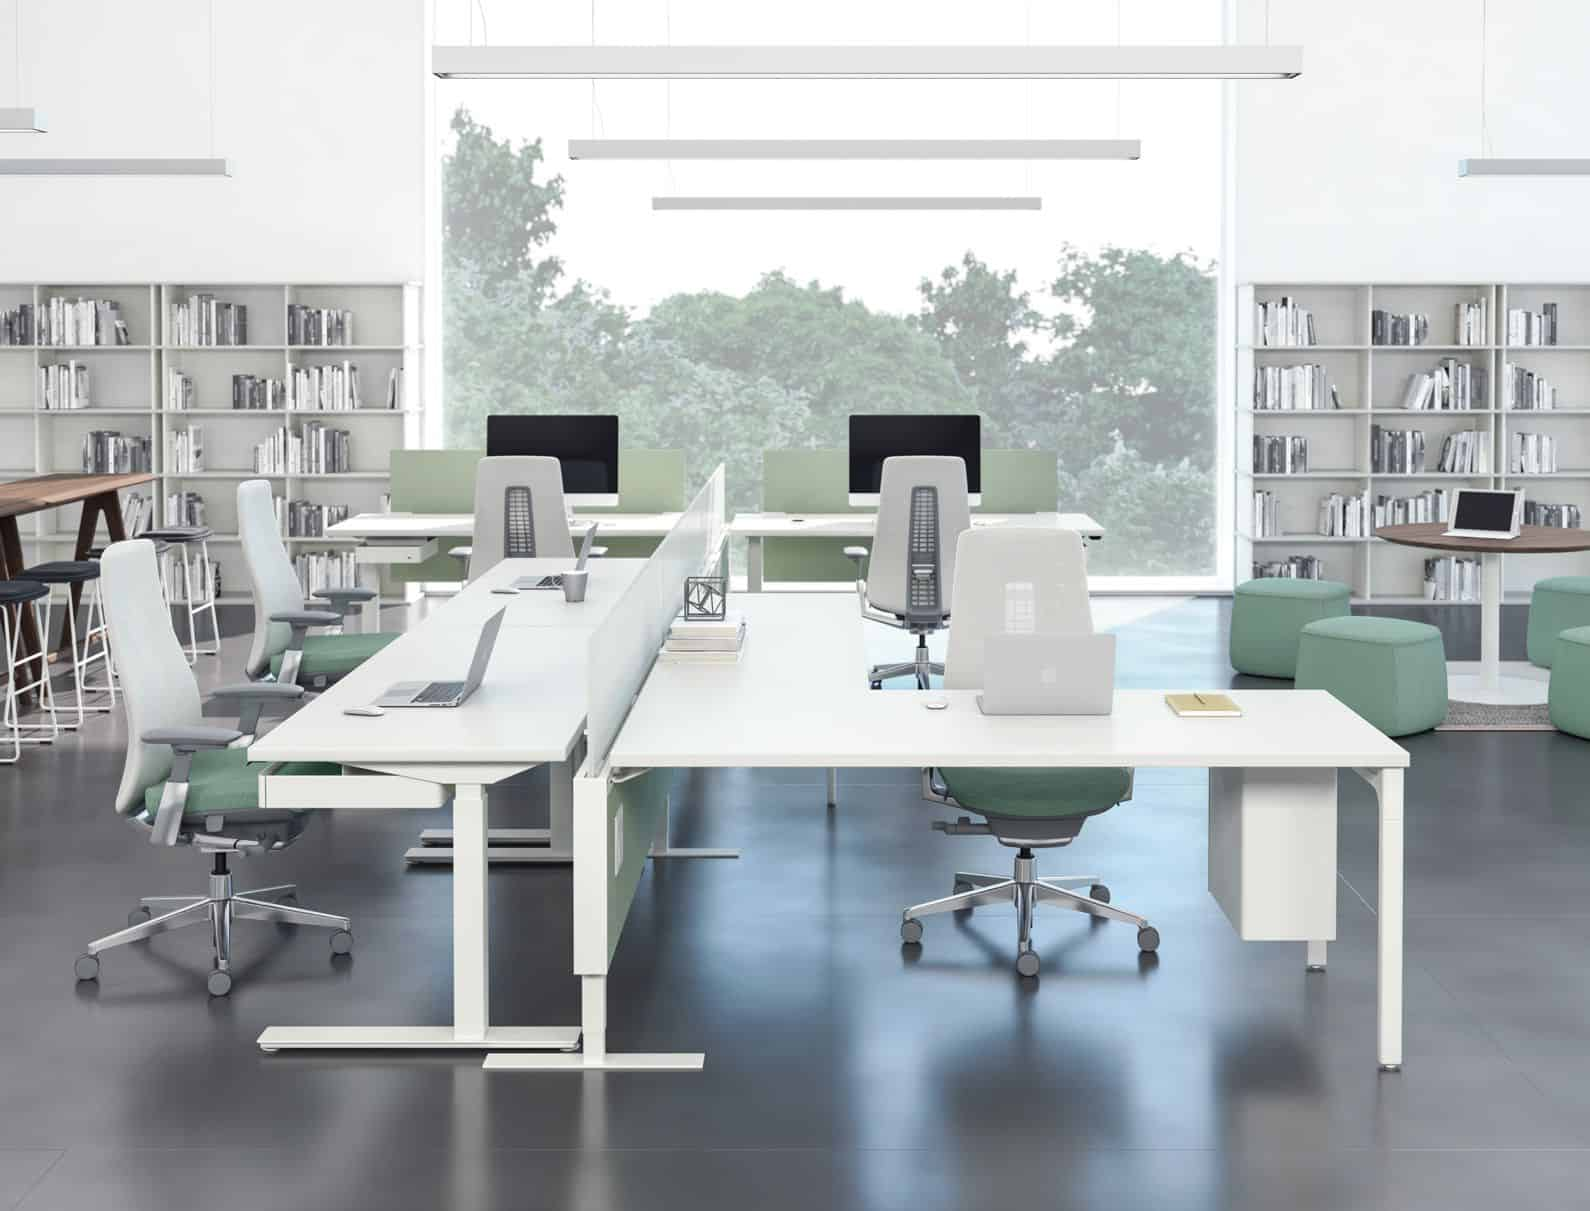 compose-connections-haworth- workspace- partition system 7